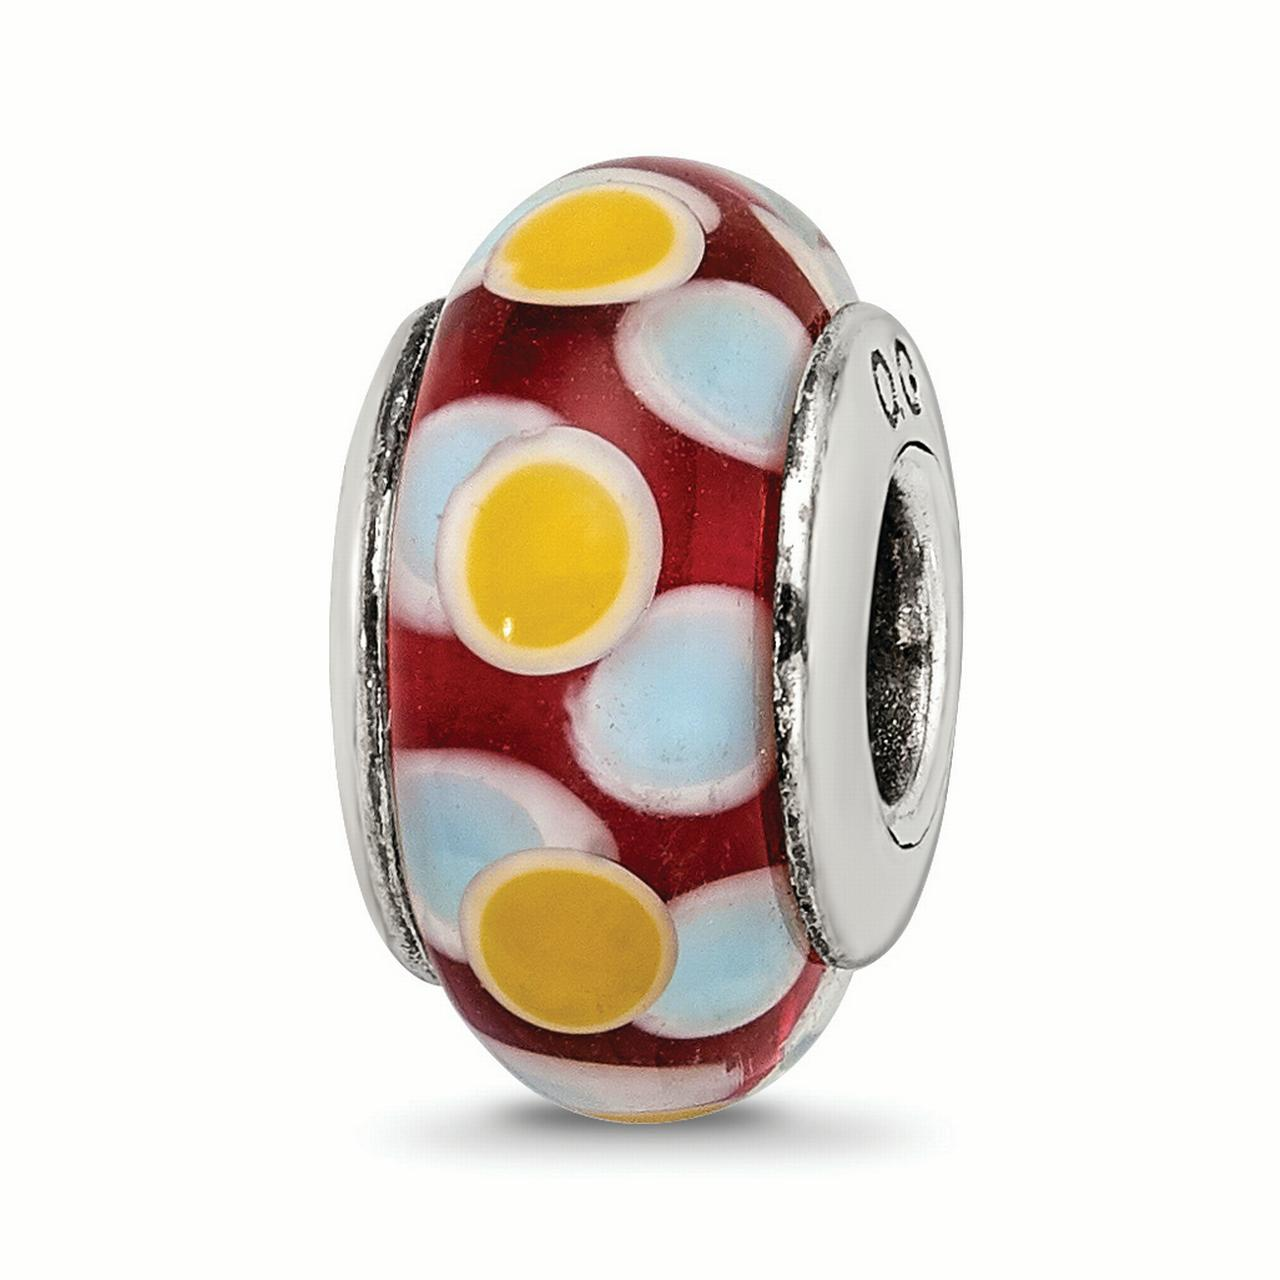 925 Sterling Silver Charm For Bracelet Red//white Hand Blown Glass Bead Glas H Fine Jewelry Gifts For Women For Her